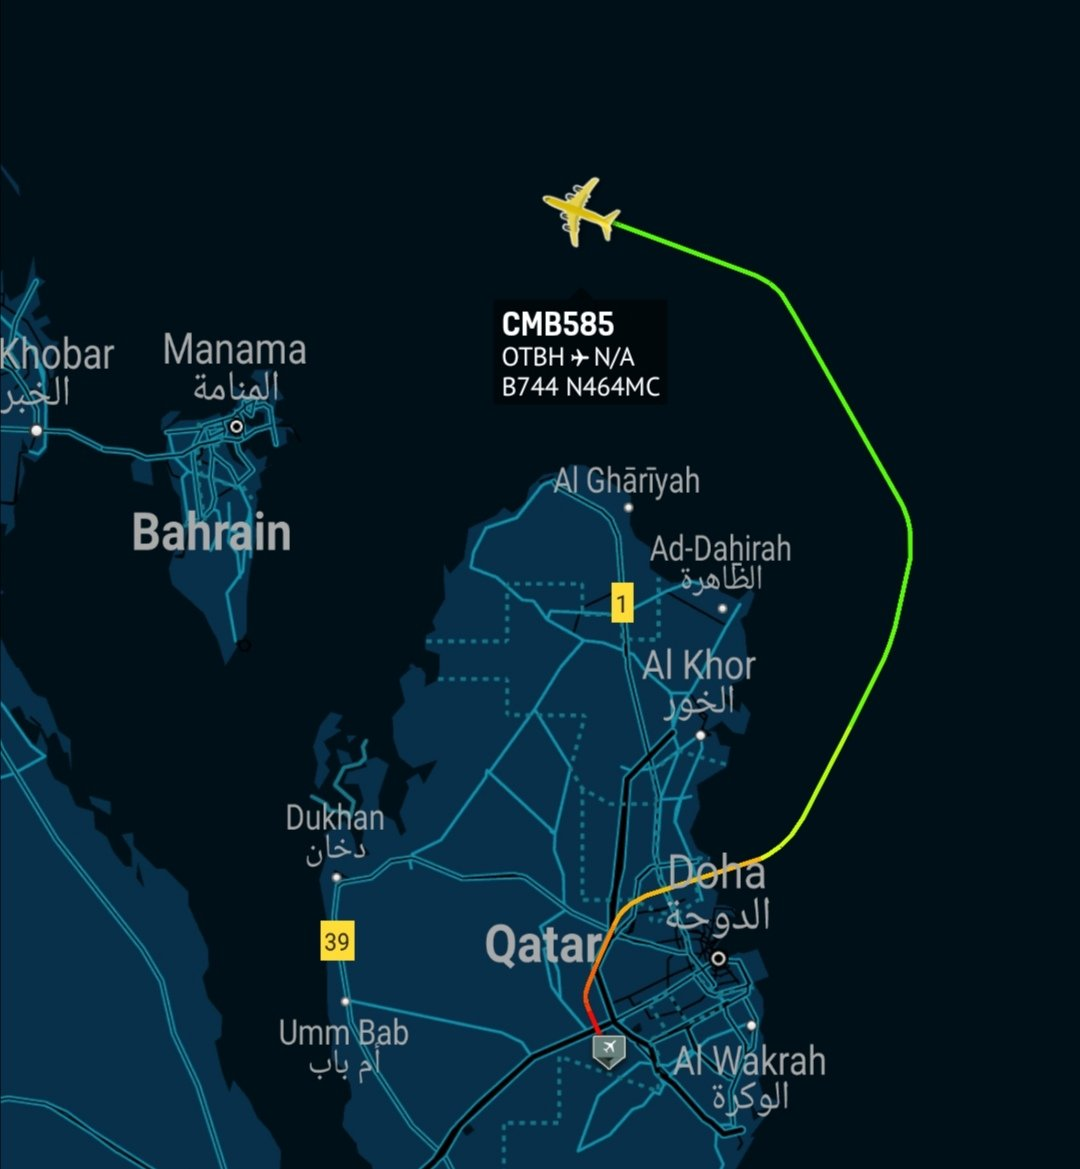 Qatar Air Force Base Map on qatar u.s. army base 2014, al dhafra air base map, qatar us air force, qatar al udeid air base, al udeid air base map, qatar country banner, qatar military 2013, qatar army base map,